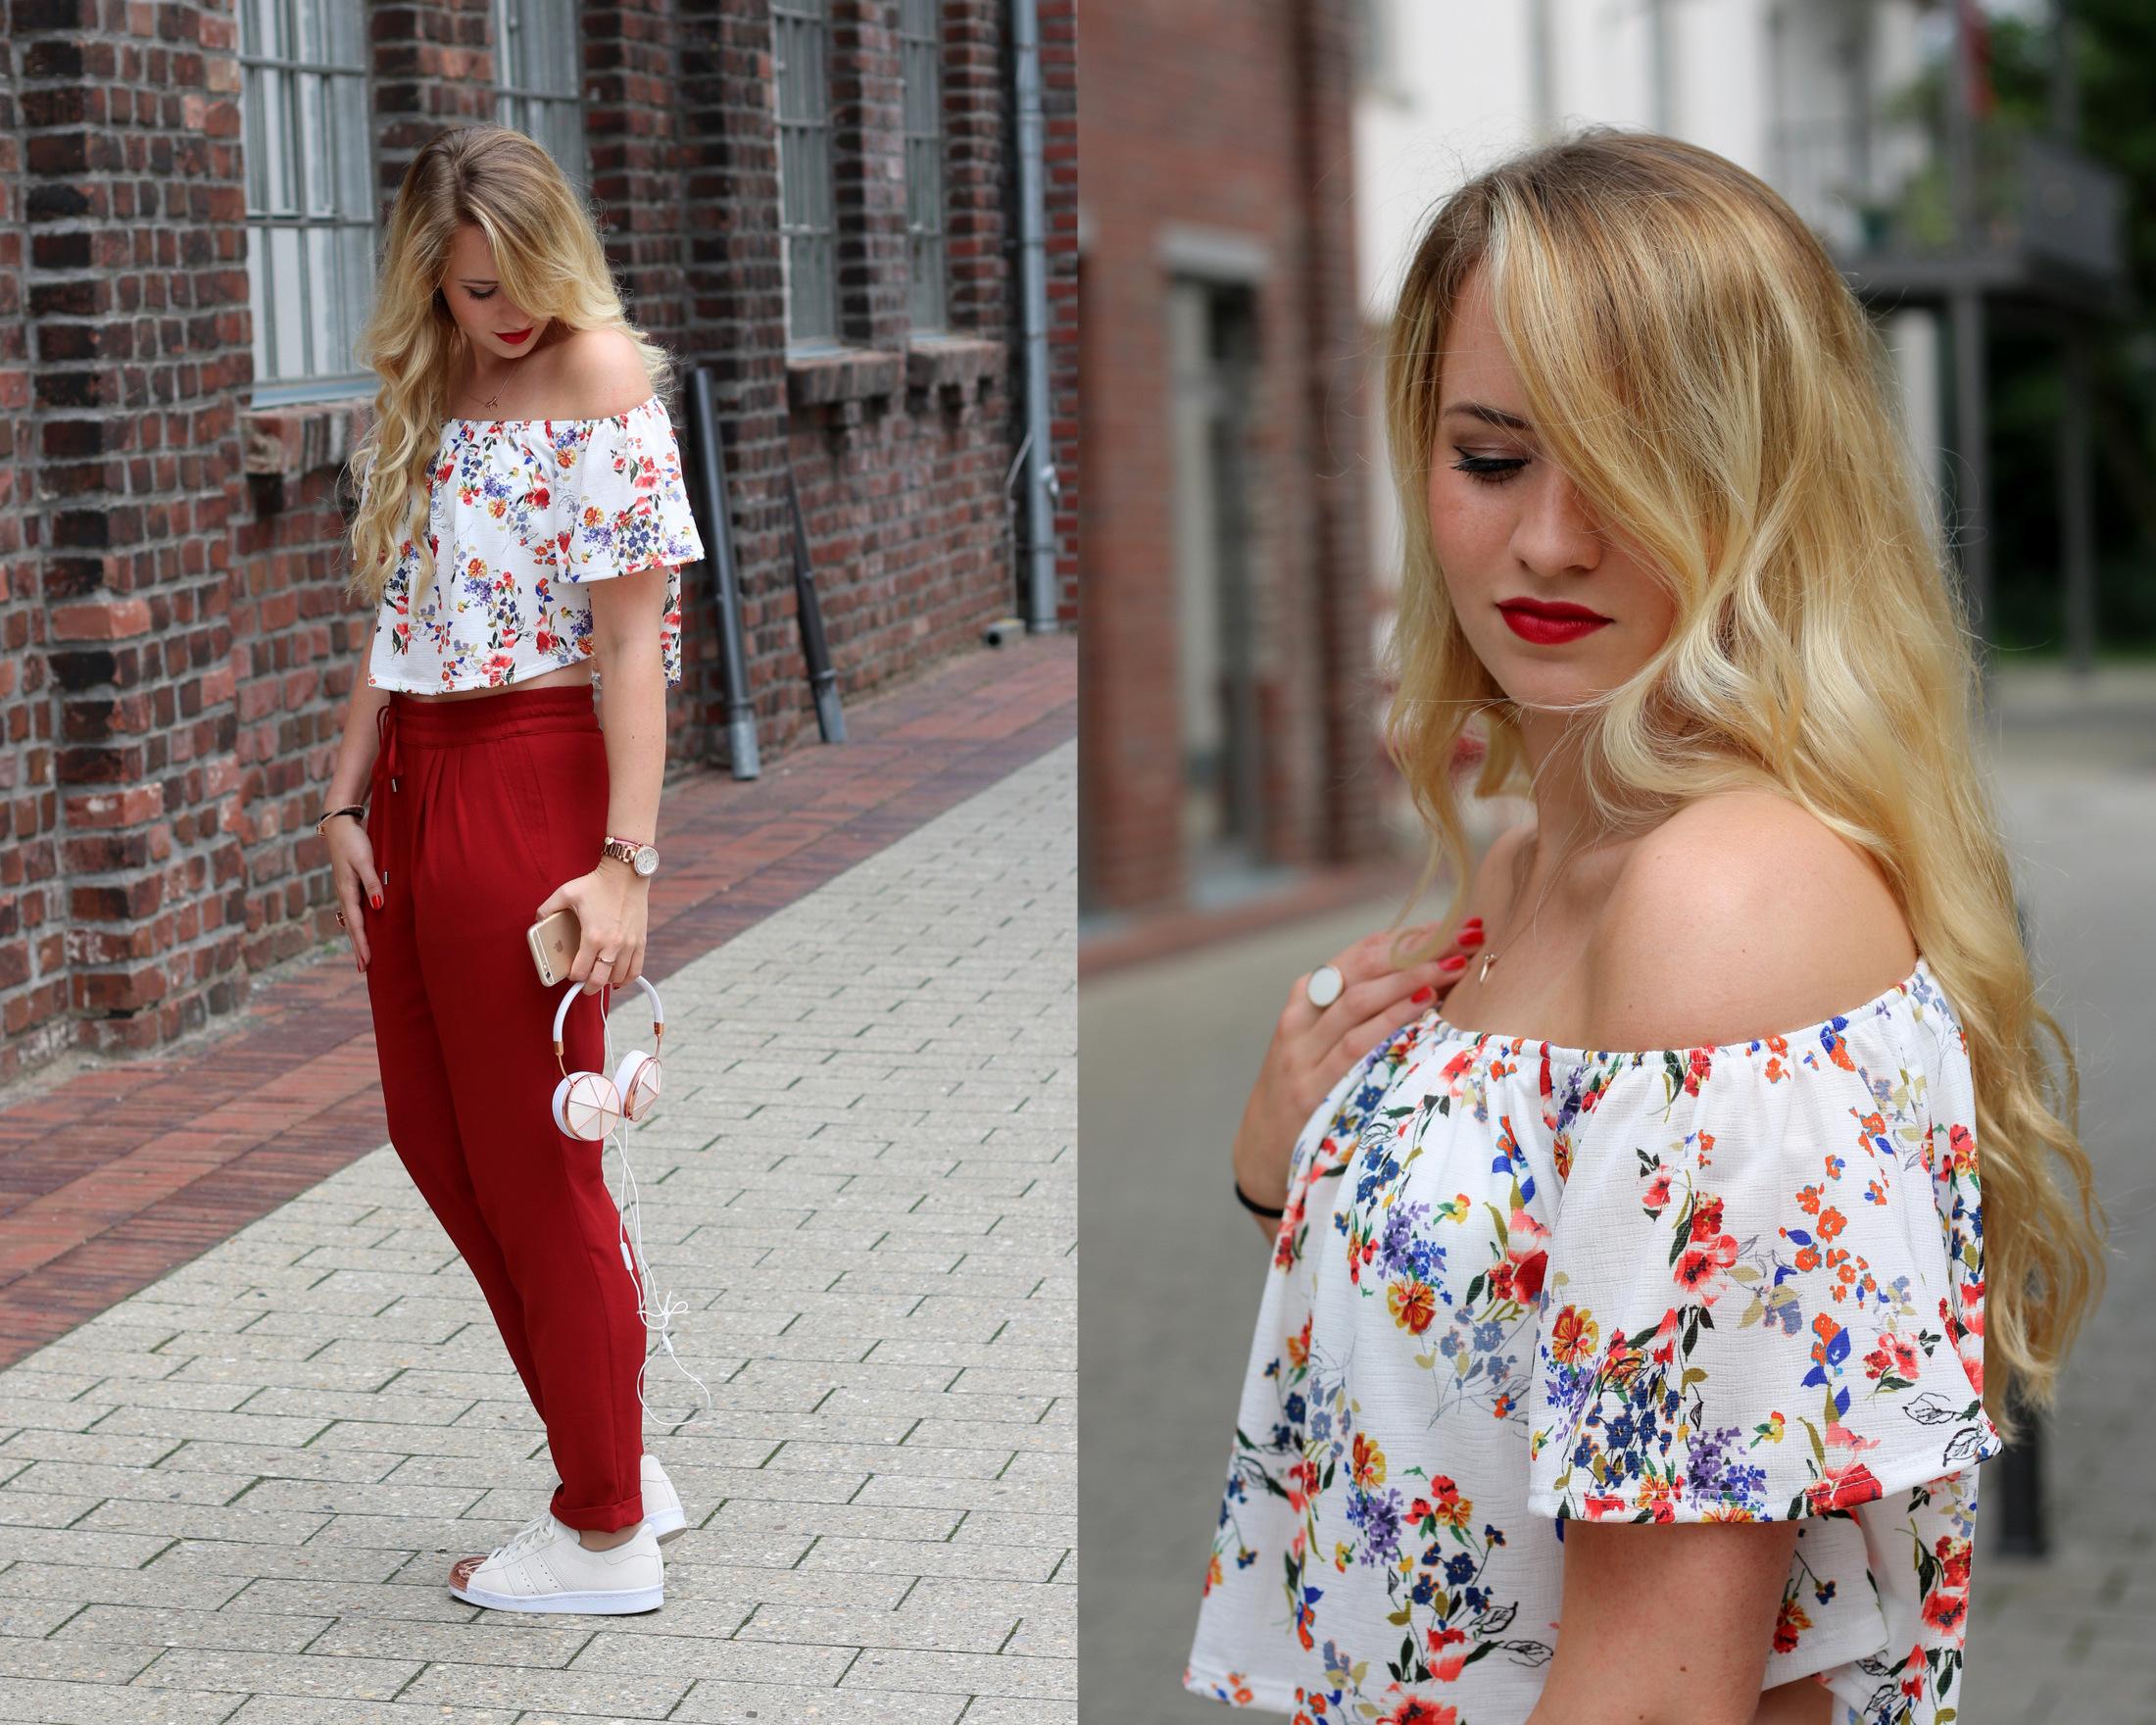 frends-headphones-kopfhörer-audio-musik-music-outfit-summer-early-look-zara-mrsbrightside (11)